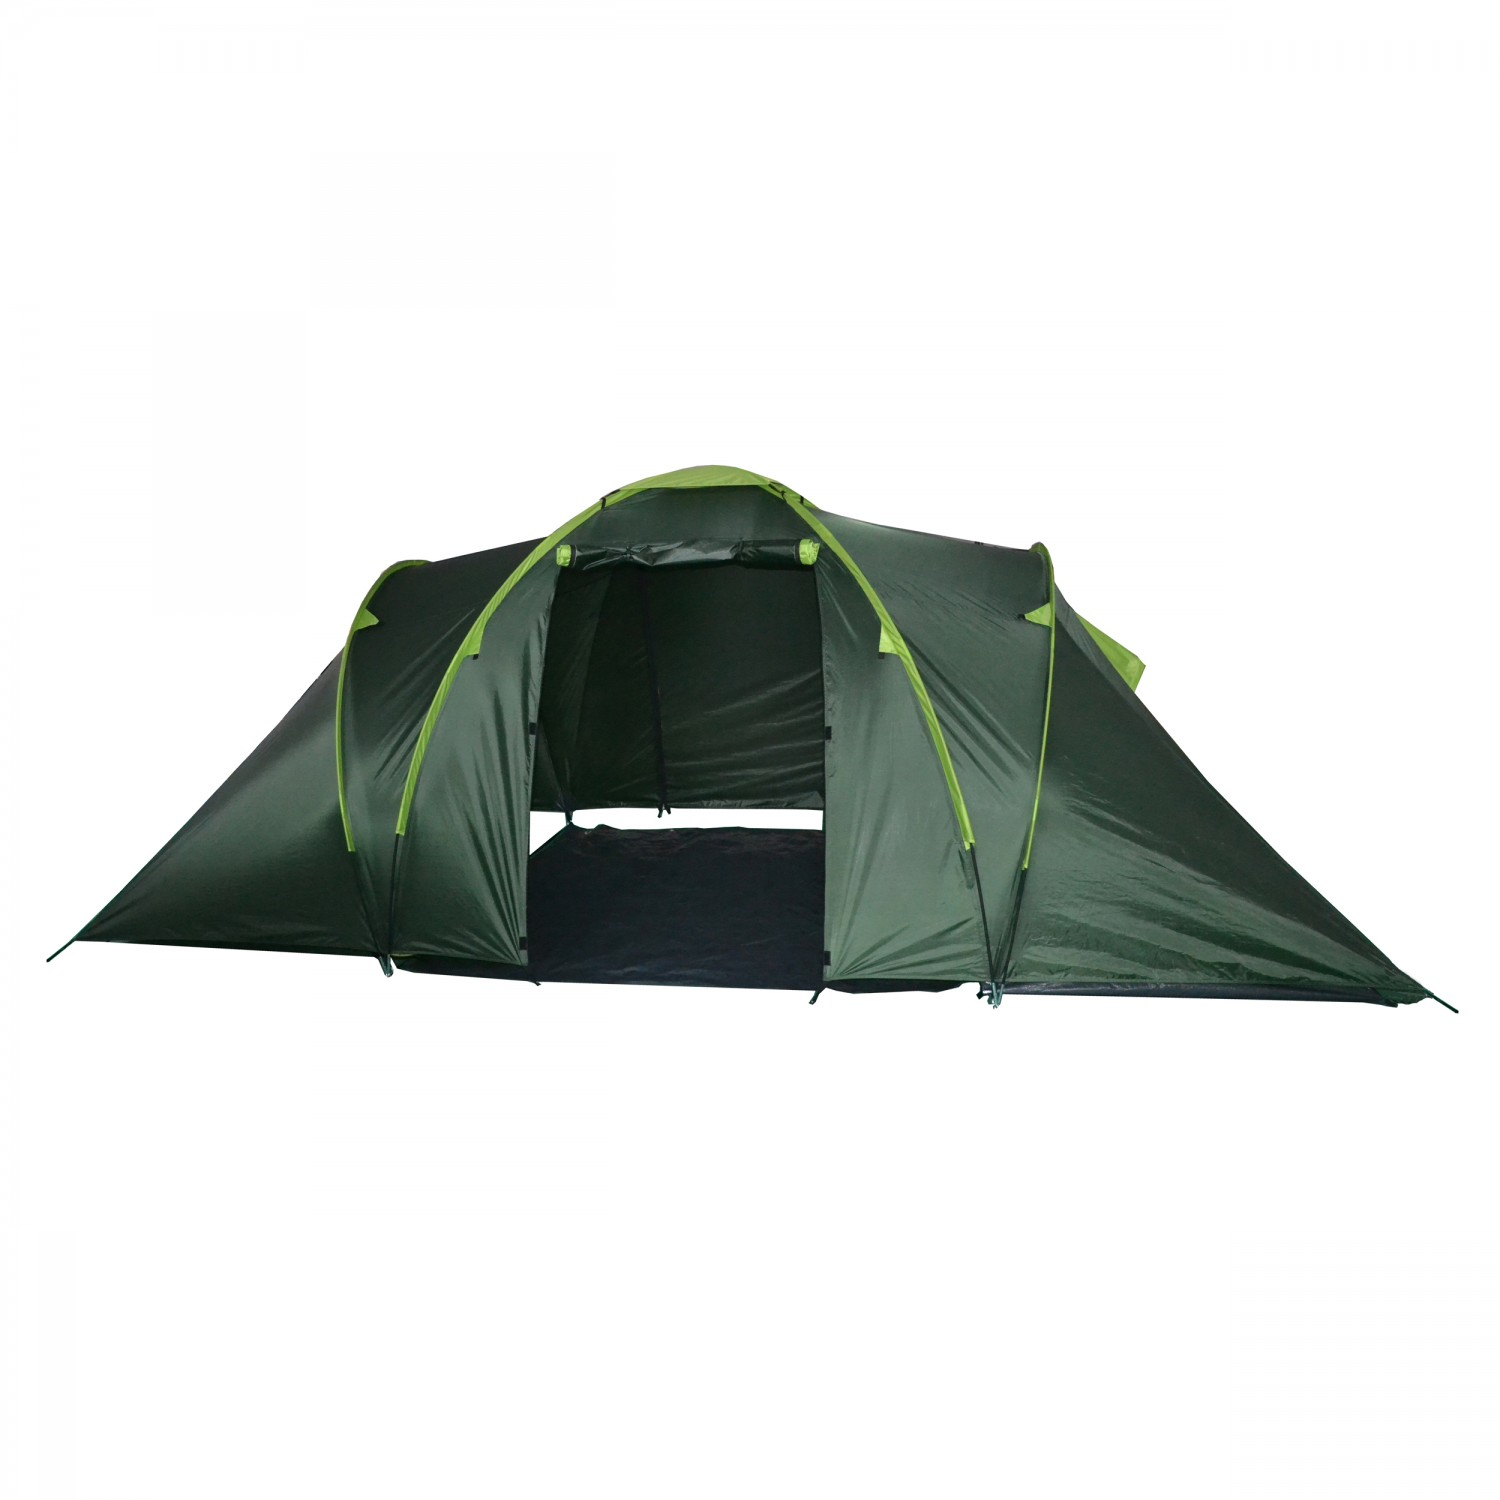 Cort camping, 6 persoane, WR3147, poliester, 460 x 10 x 190 cm